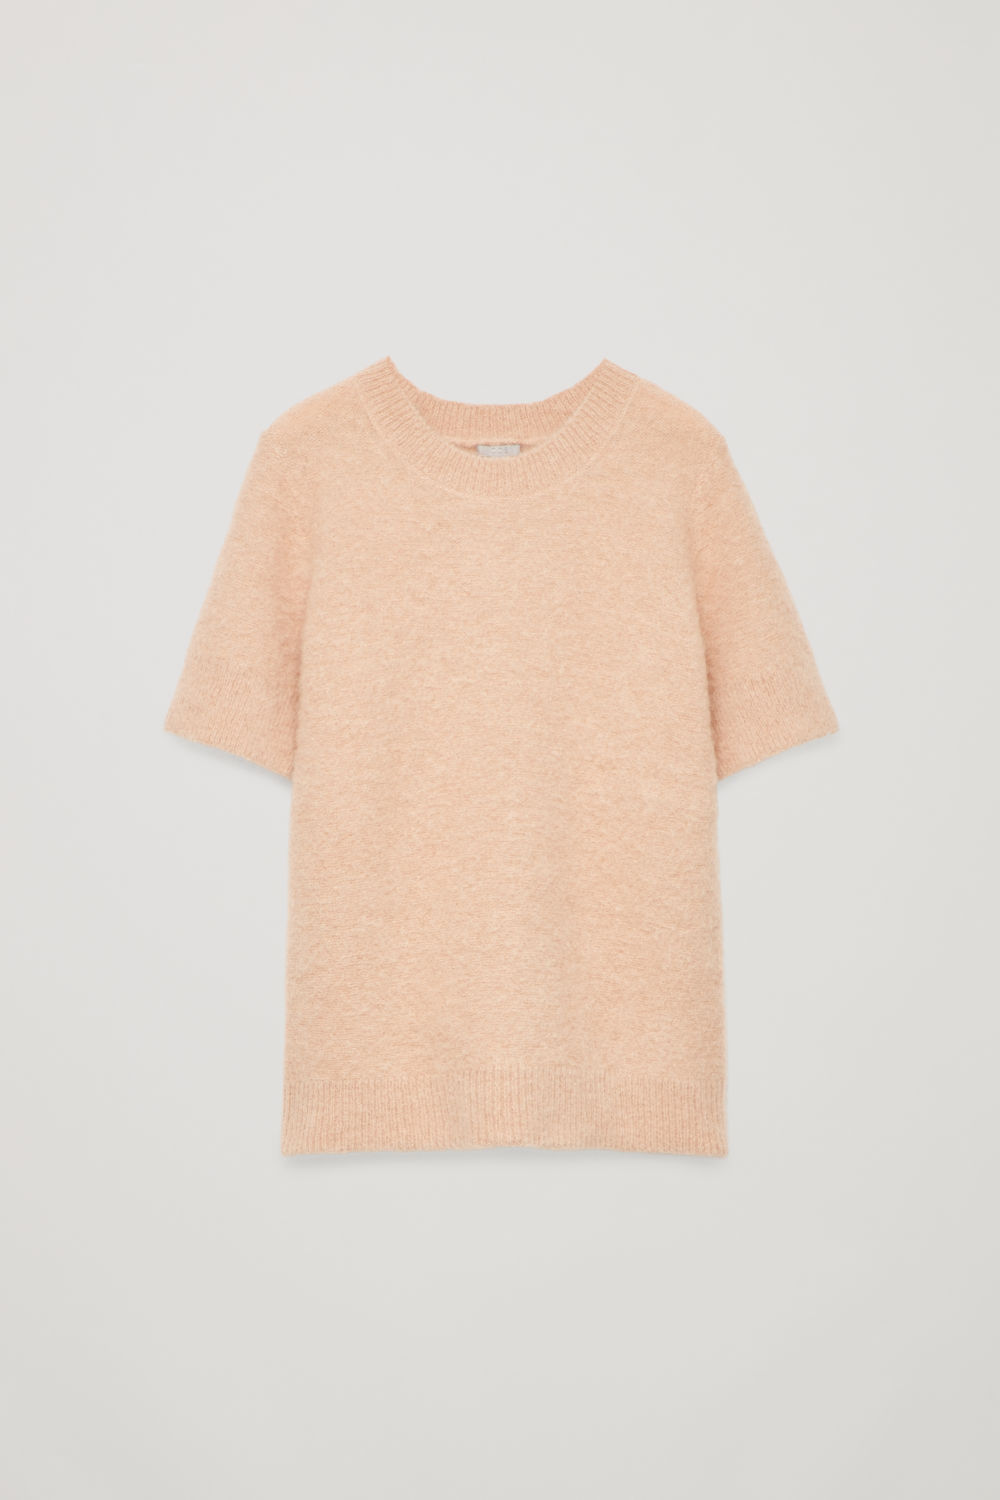 TEXTURED KNITTED T-SHIRT